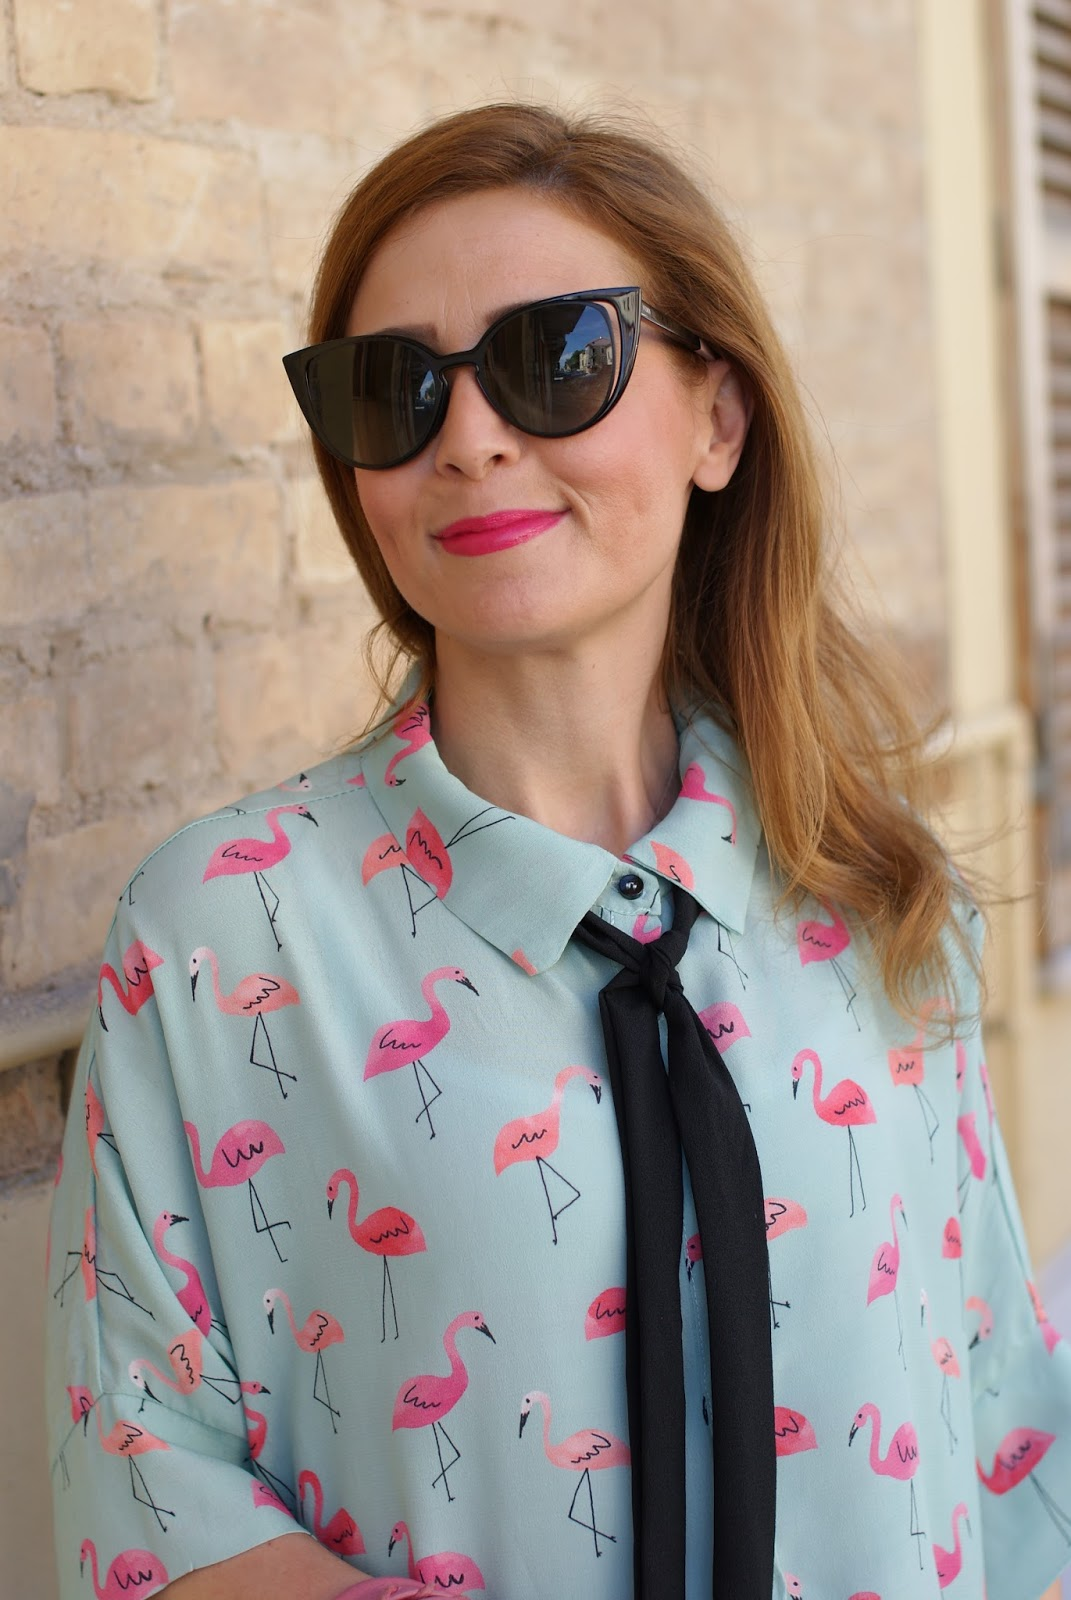 Flamingo print shirt and Fendi sunglasses via Giarre.com on Fashion and Cookies fashion blog, fashion blogger style